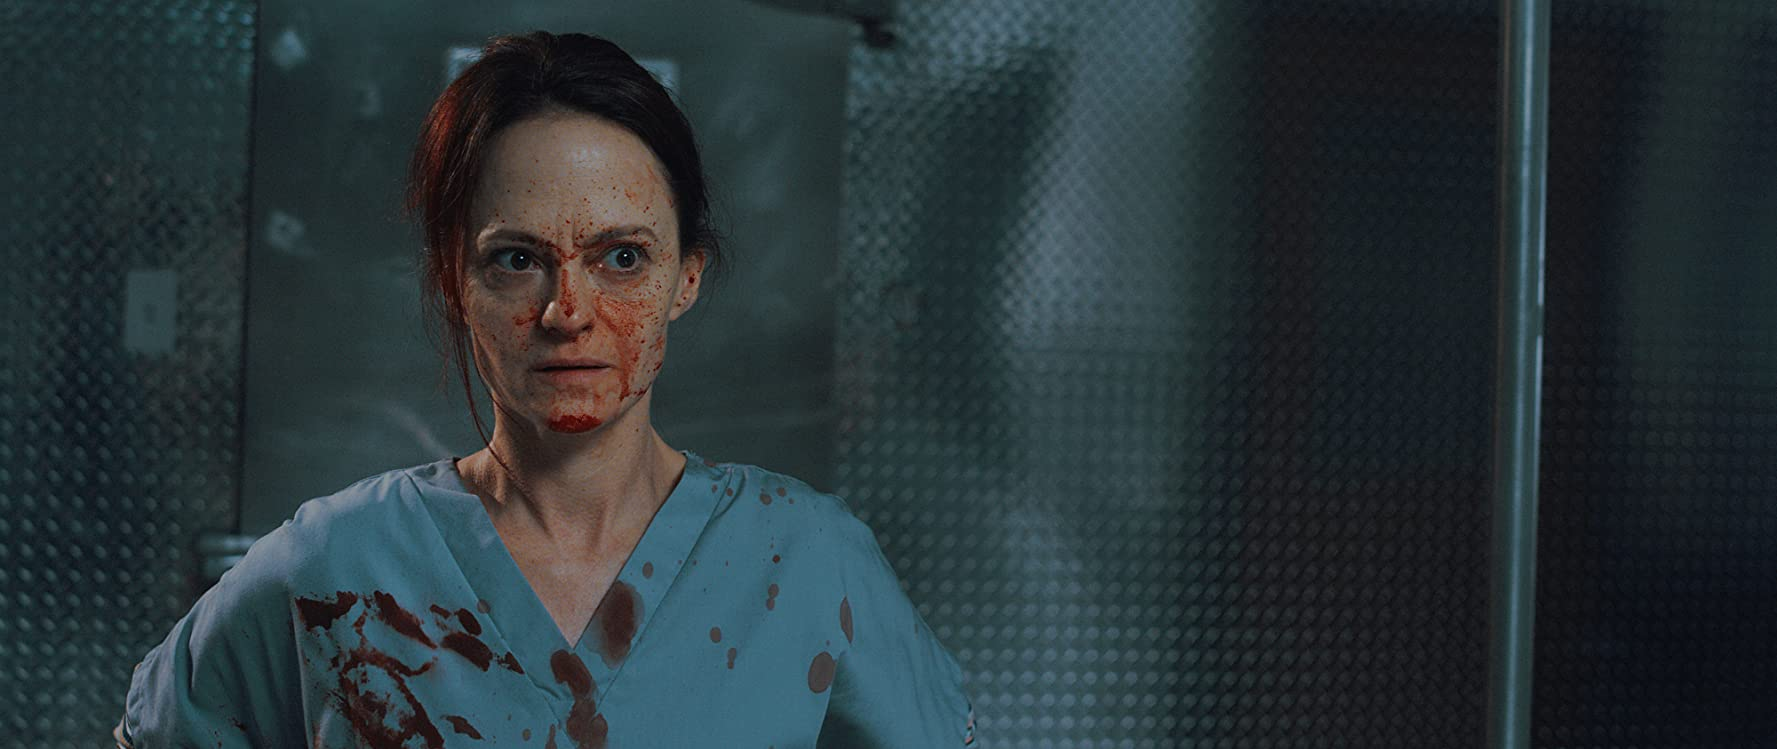 12 Hour Shift [Grimmfest] Review: Scalpel Sharp Hospital Horror